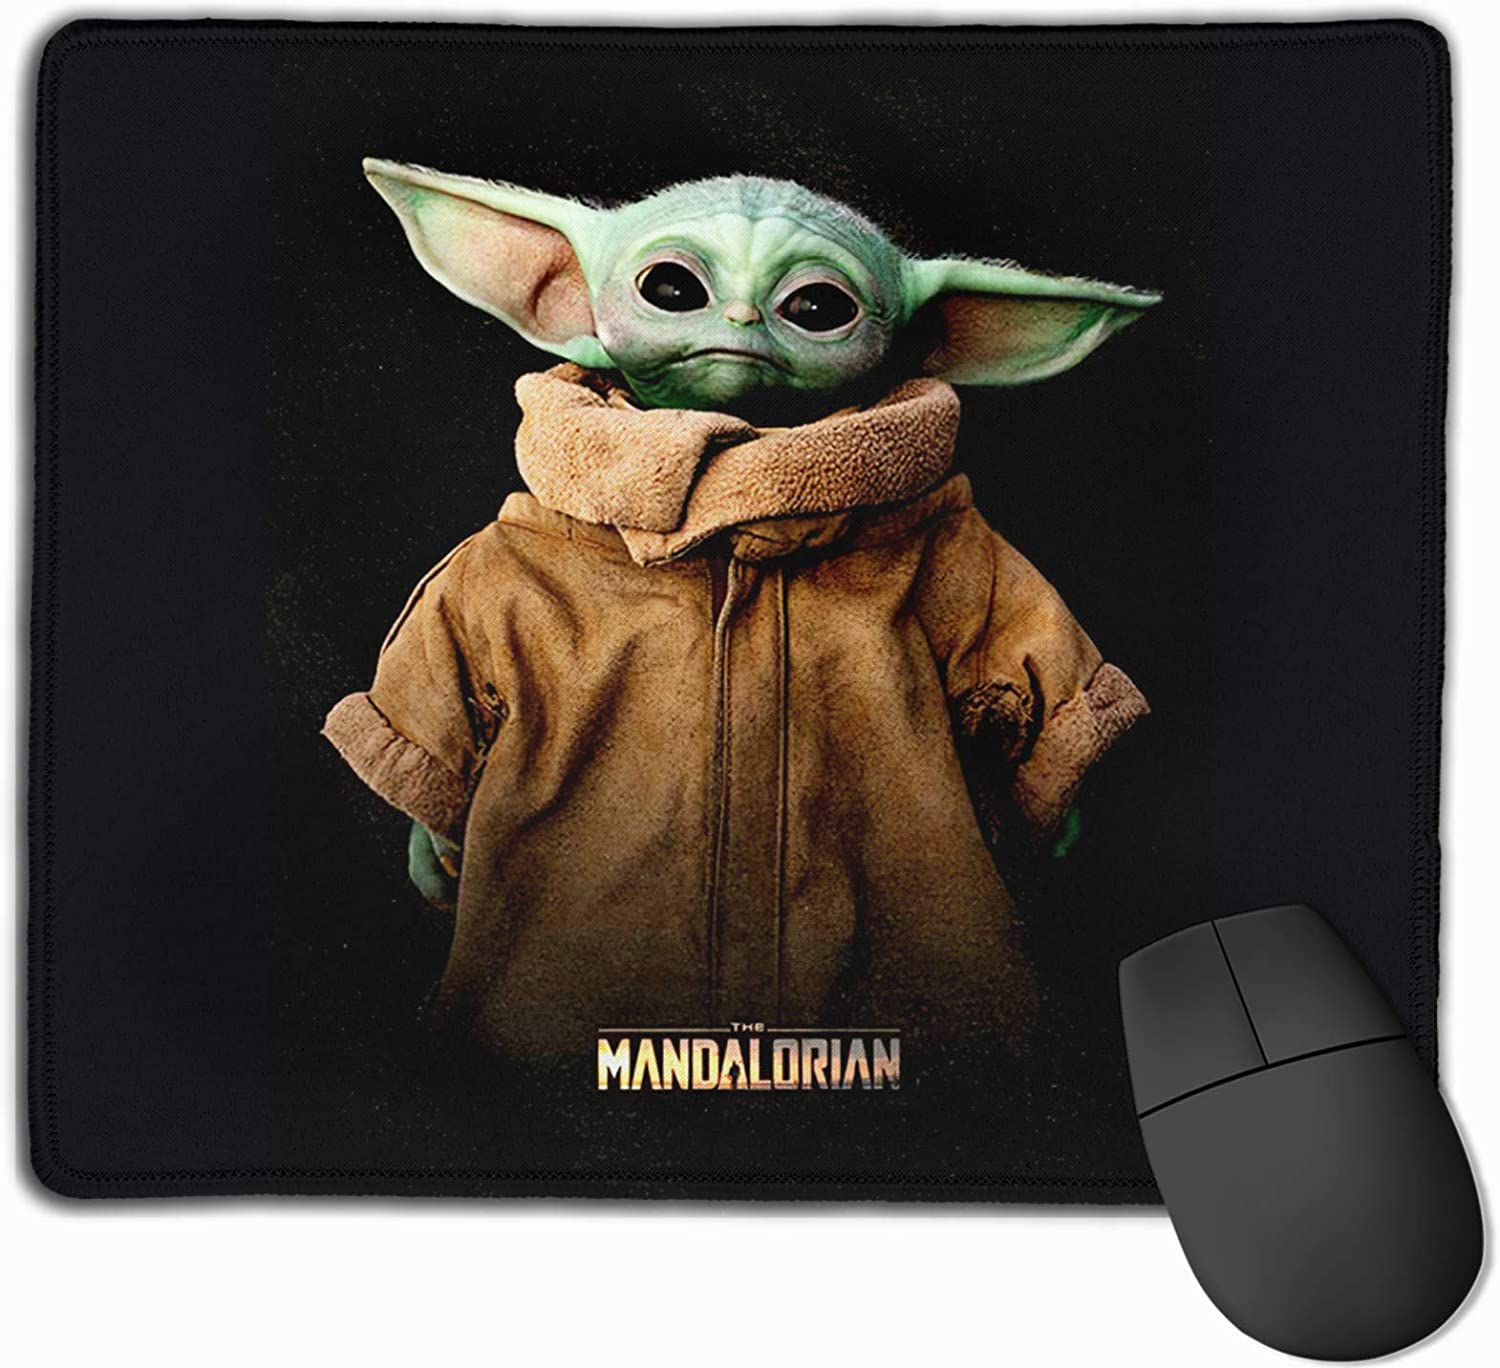 epilimnion Star Wars The Mandalorian The Child Baby Yoda Computer Gaming Mouse Pad Laptop Pad Non-Slip Rubber Stitched Edges 11.8 X 9.8 Inch